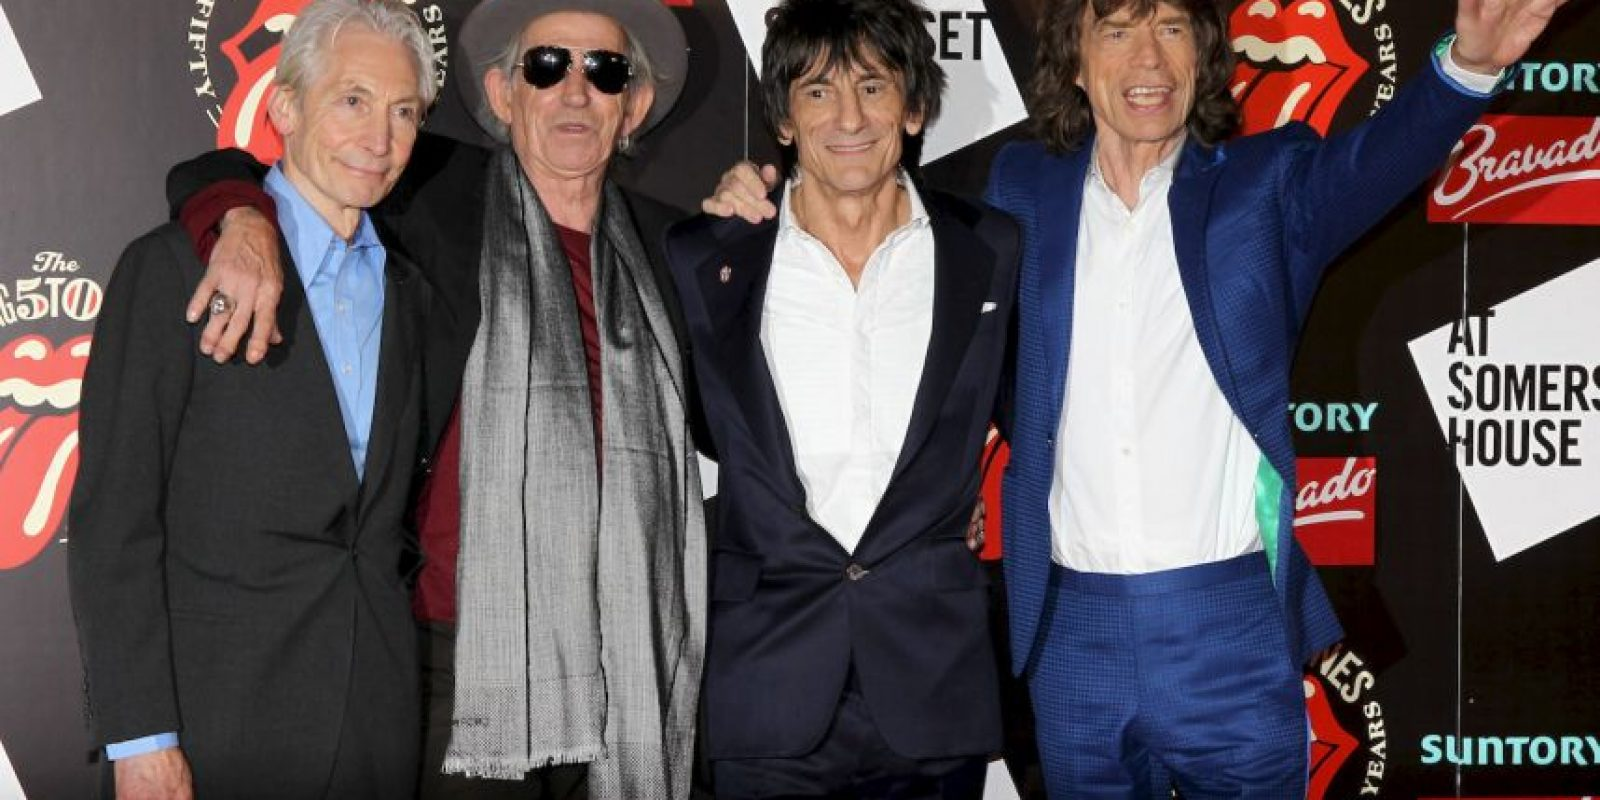 The Rolling Stones Foto: Getty Images